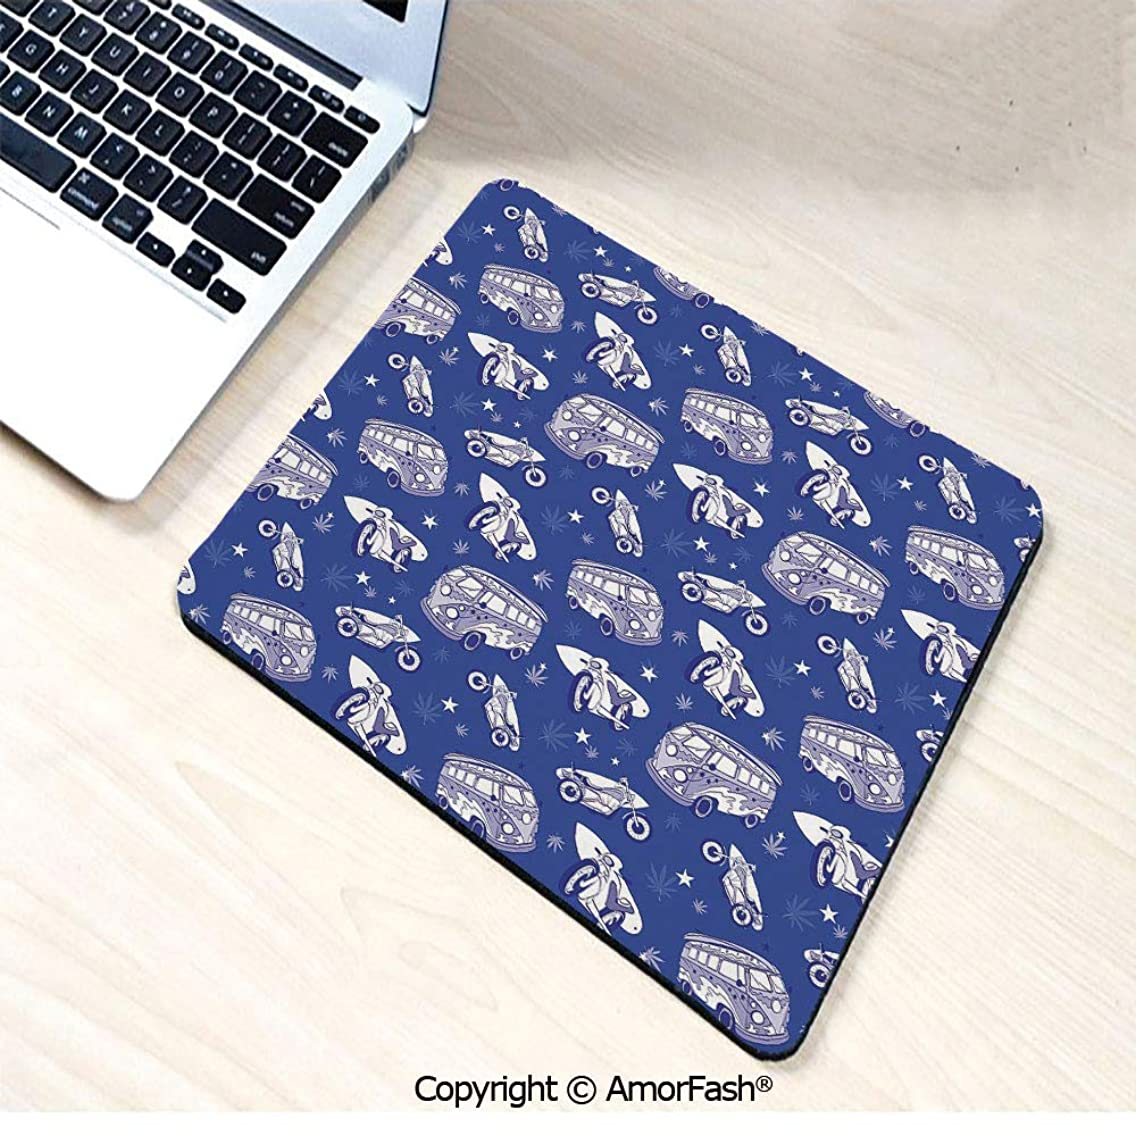 Heat Transferred Printing Mouse Pad for Office and Home,Non-Slip Rubber,11